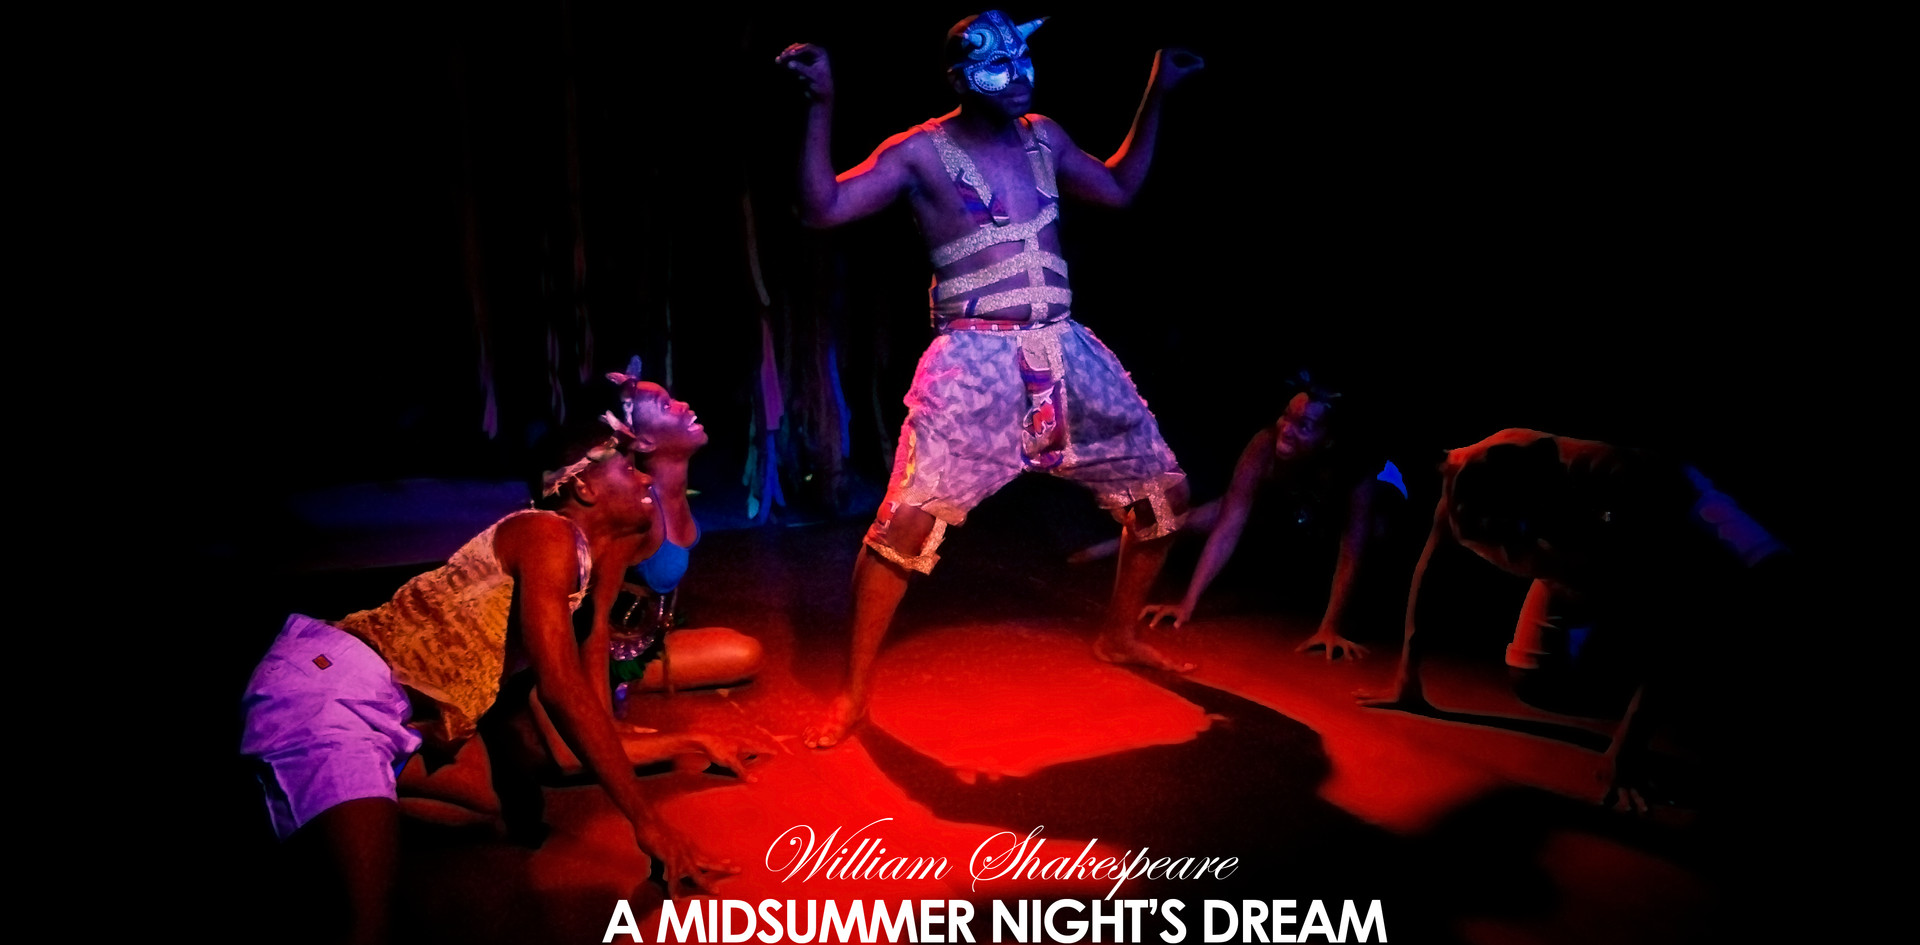 A Midsummer Nights Dream by William Shakespeare (2013)